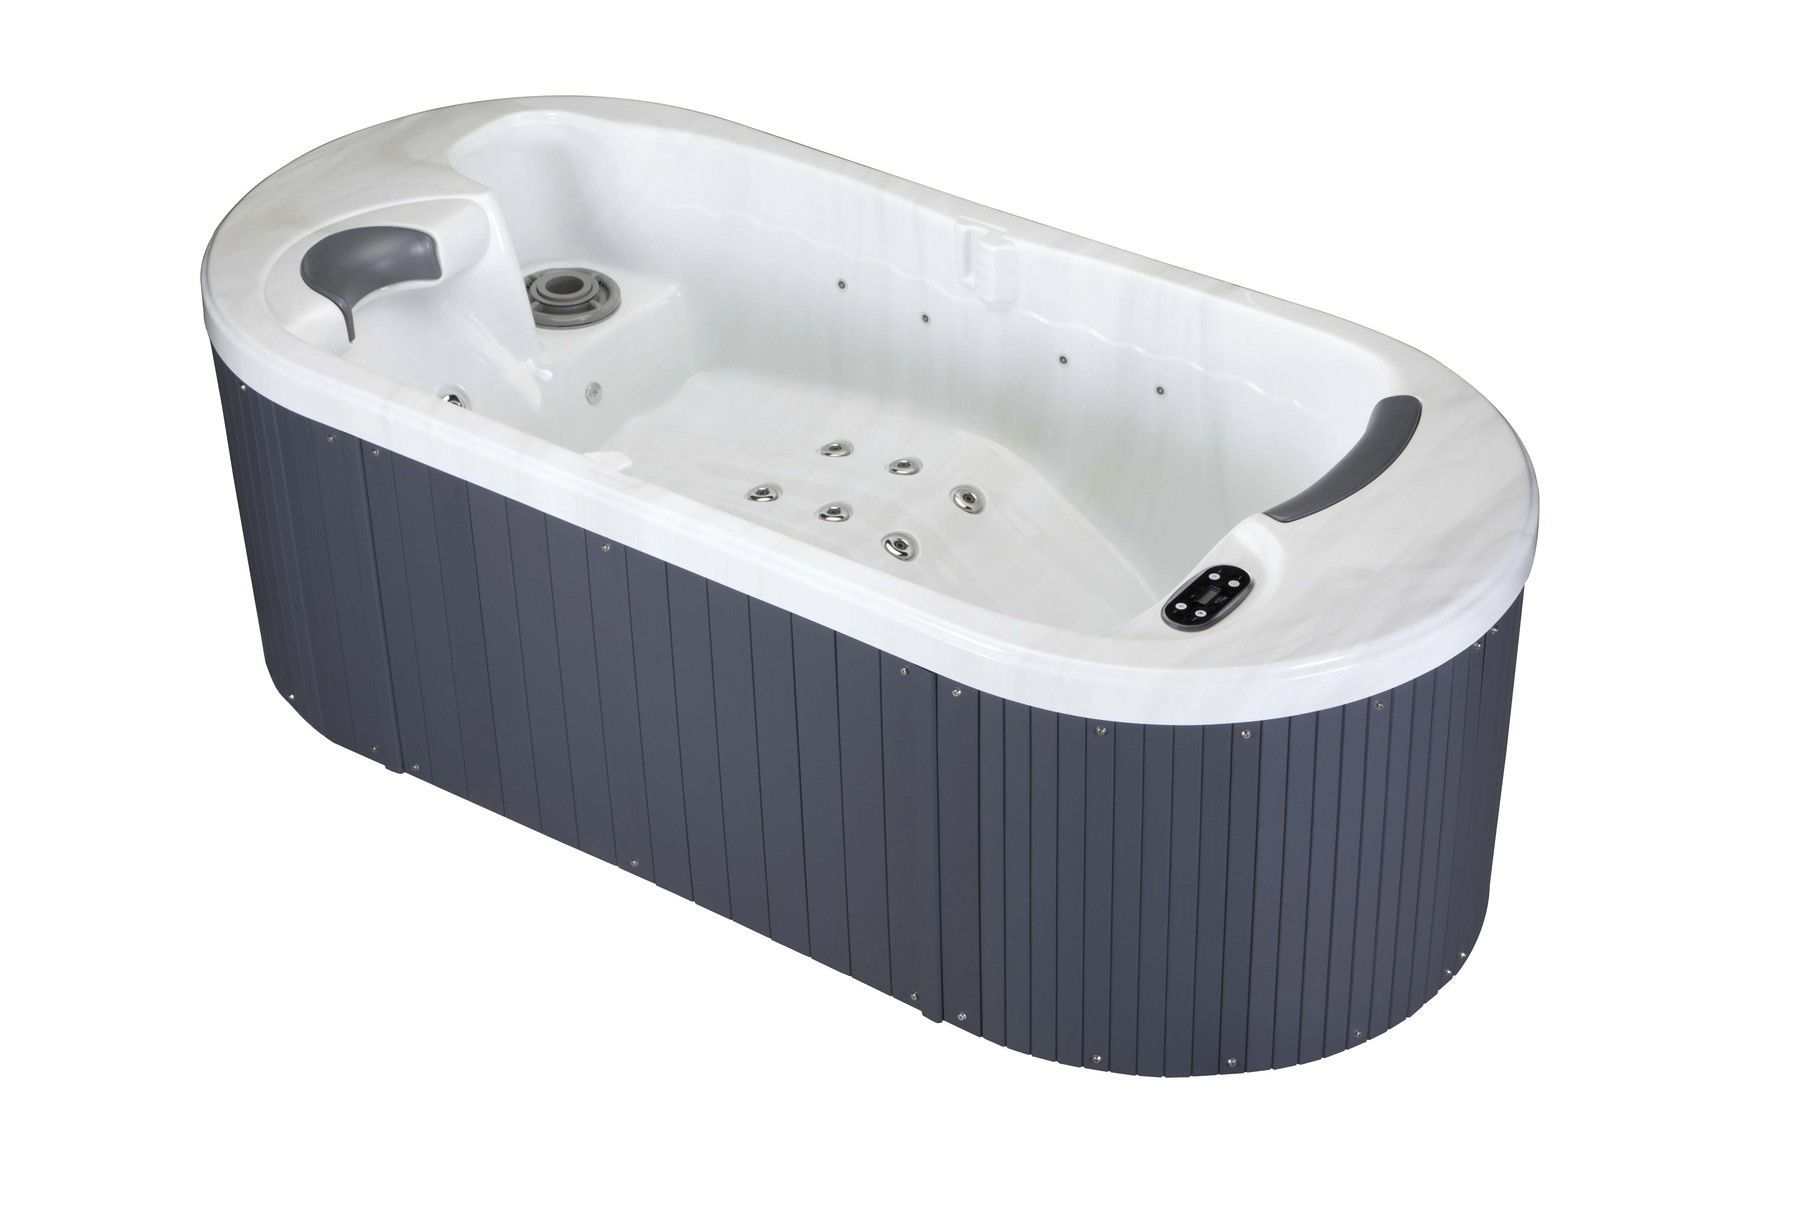 Above-ground hot tub / oval / 2-person / indoor - LOFT - Aqua Dolce